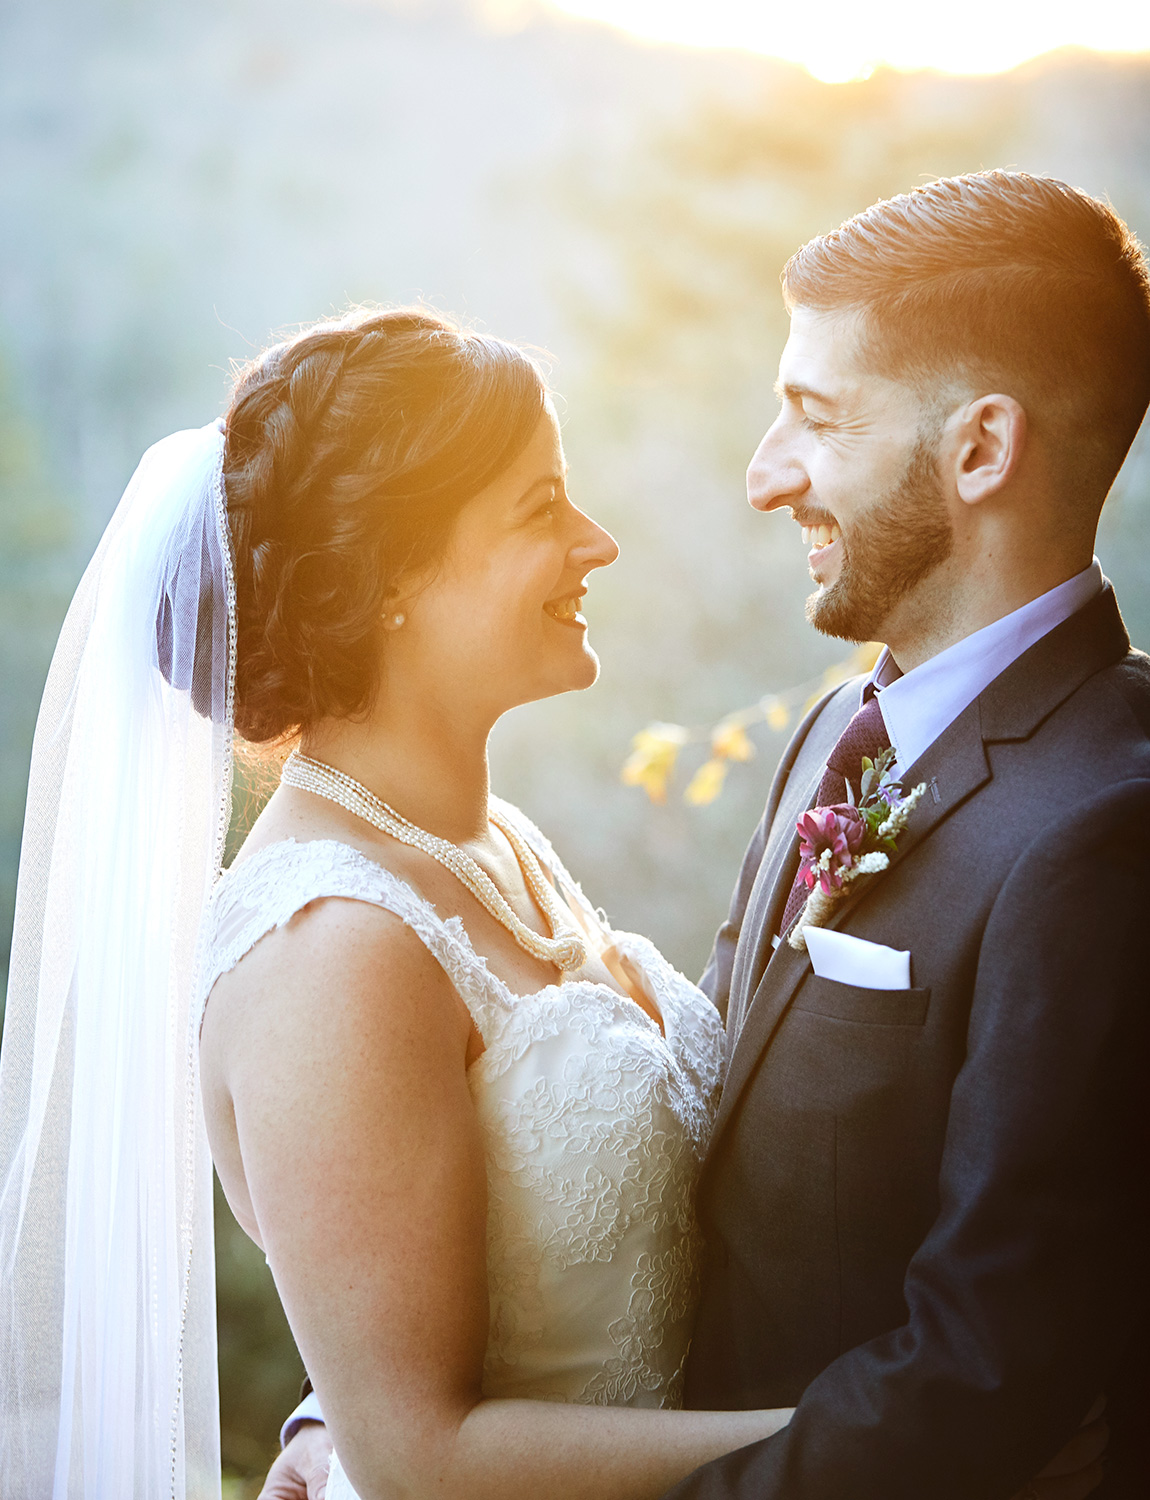 161119_ArrowParkLake&LodgeWedding_By_BriJohnsonWeddings_0127.jpg